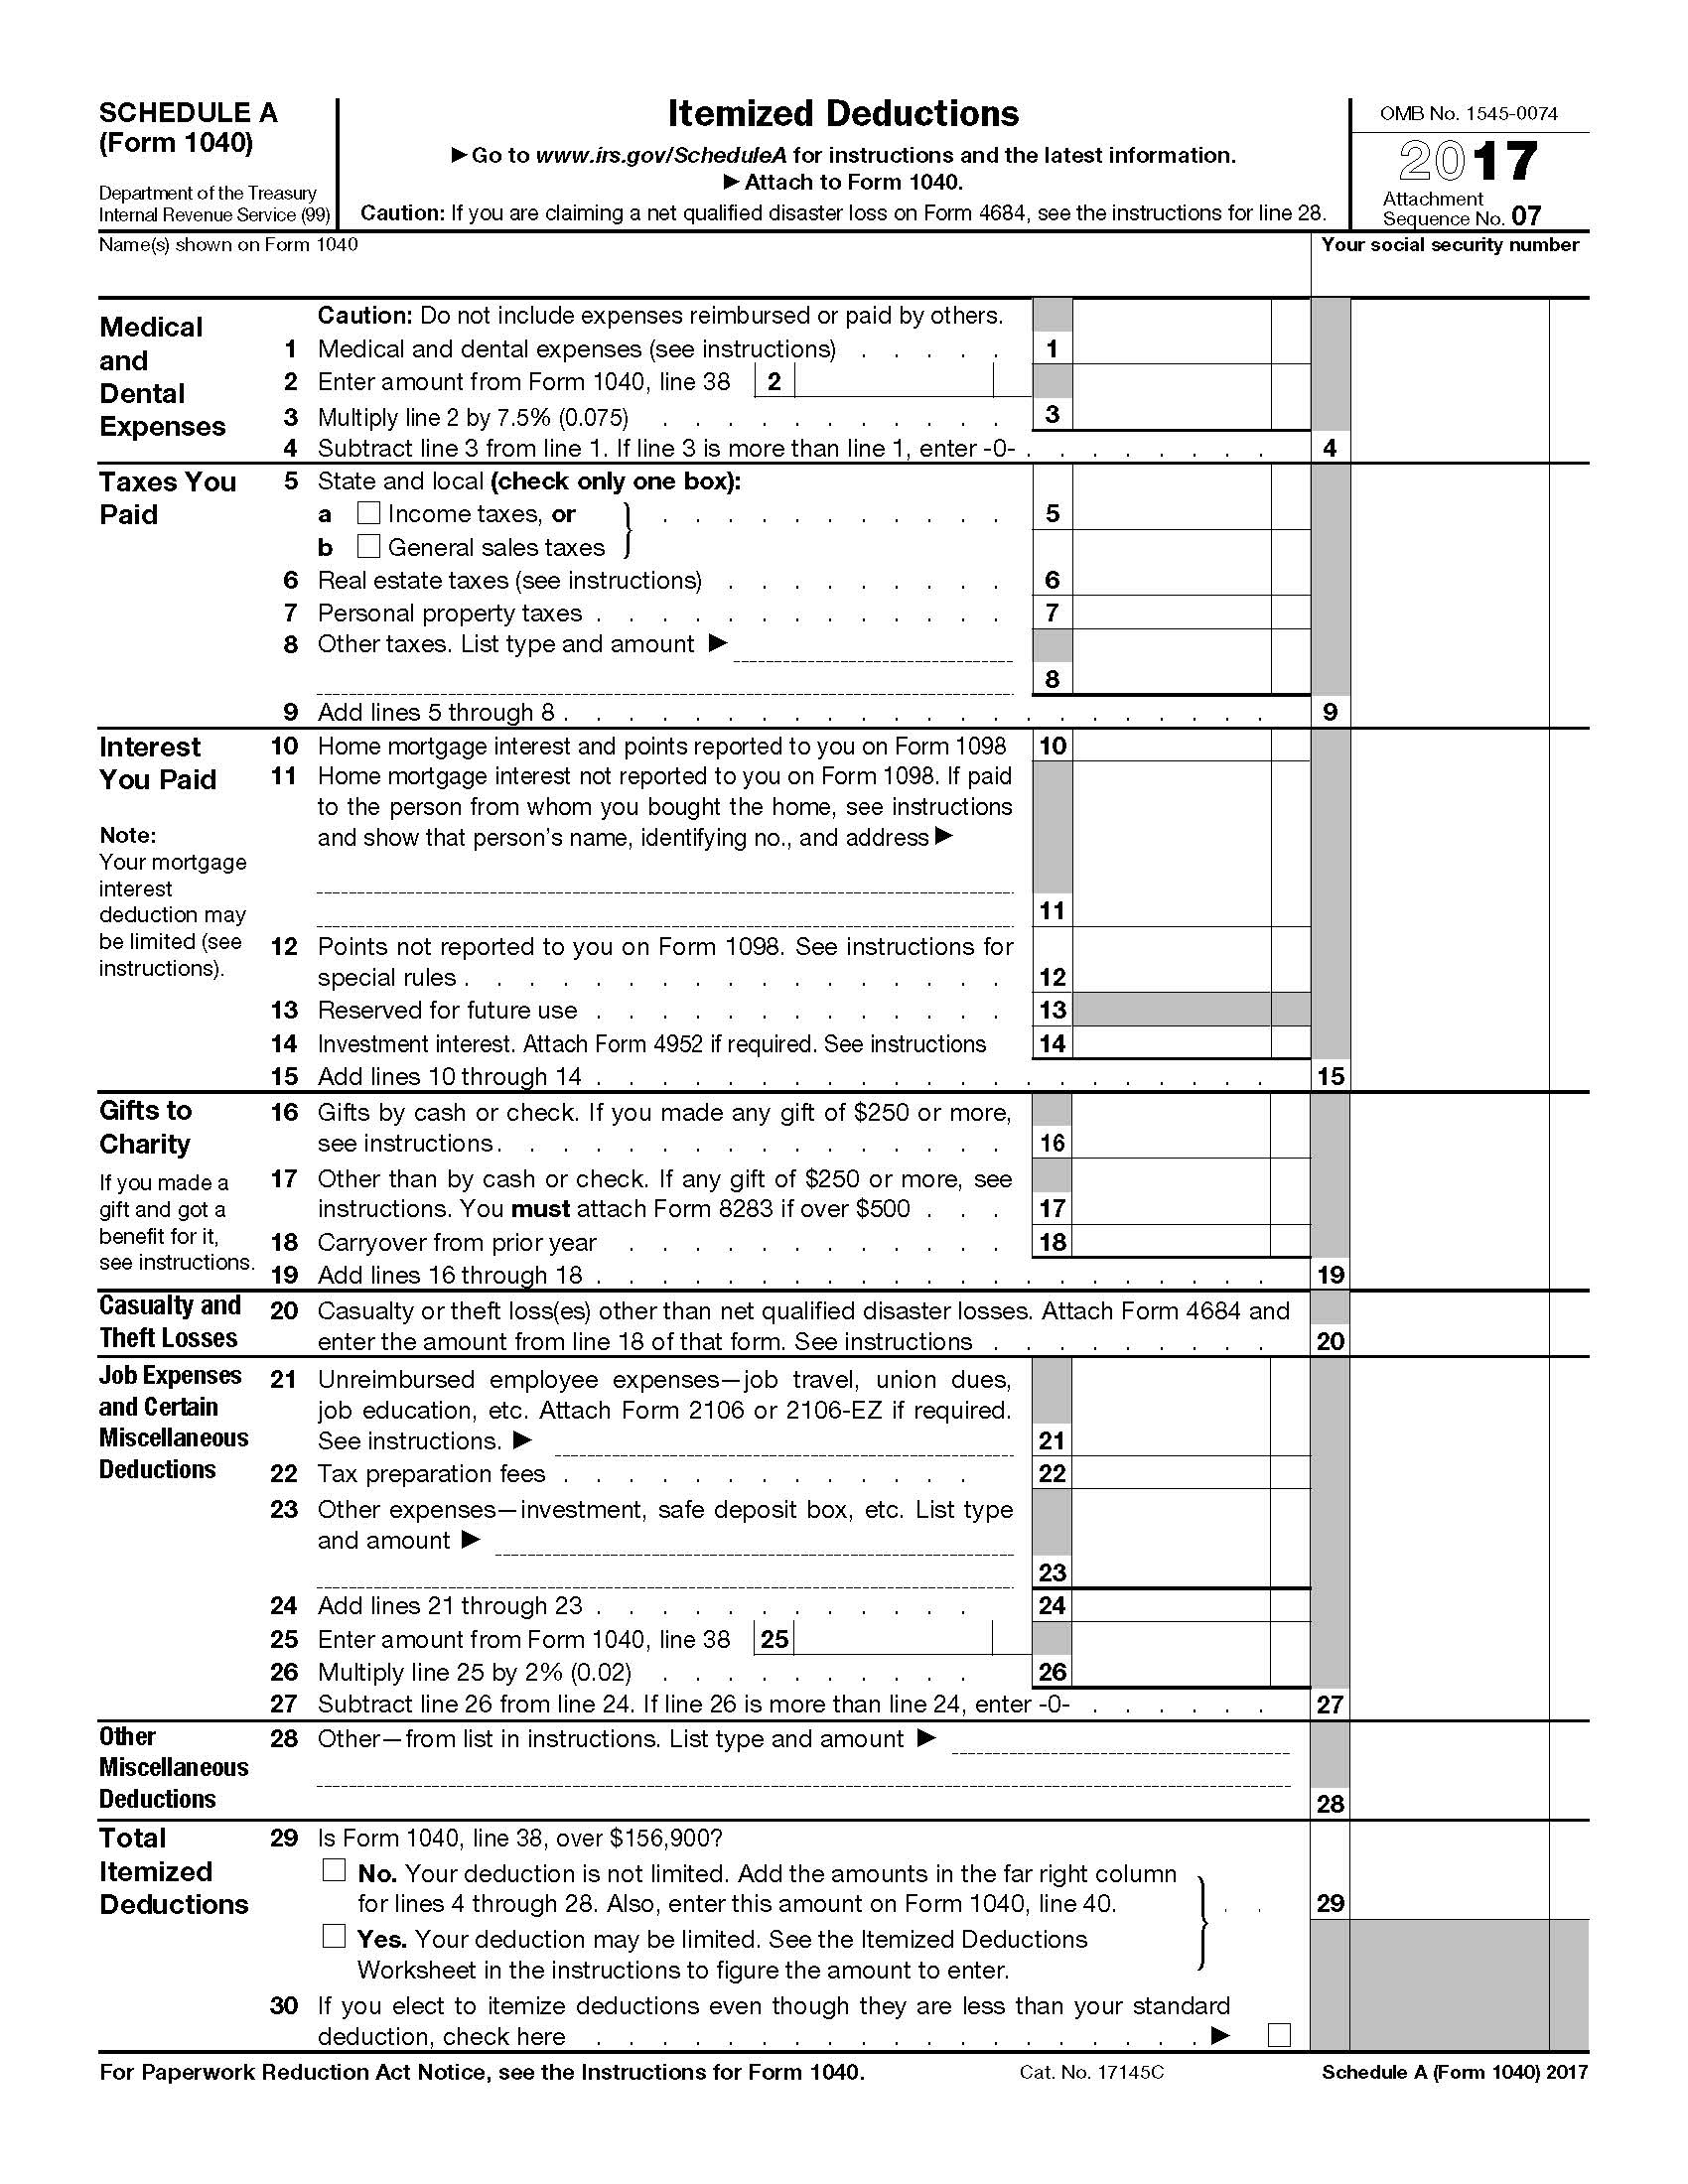 Itemized Deductions Worksheet Filled Out